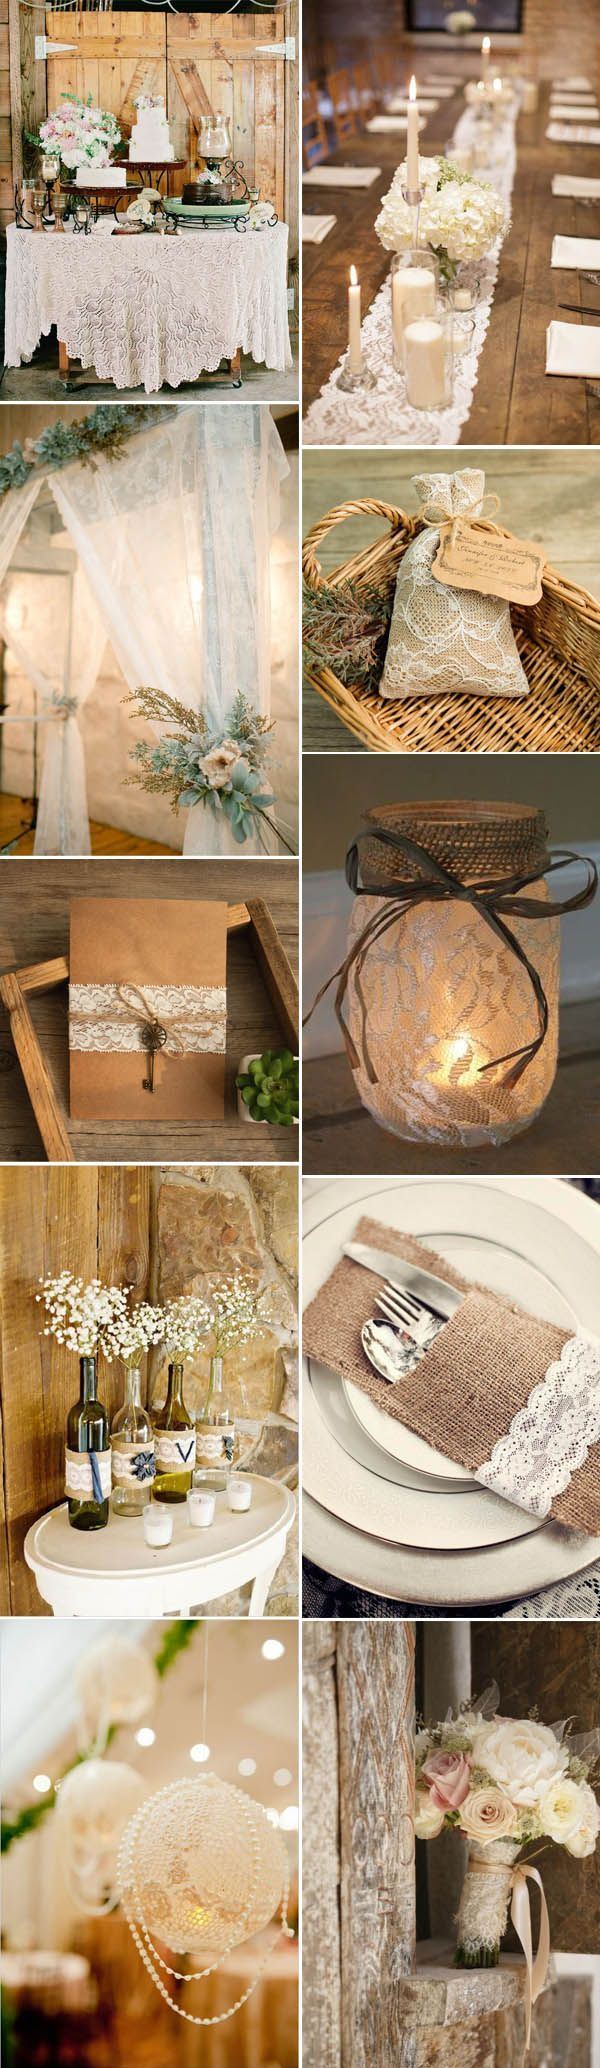 gorgeous lace rustic barn wedding ideas